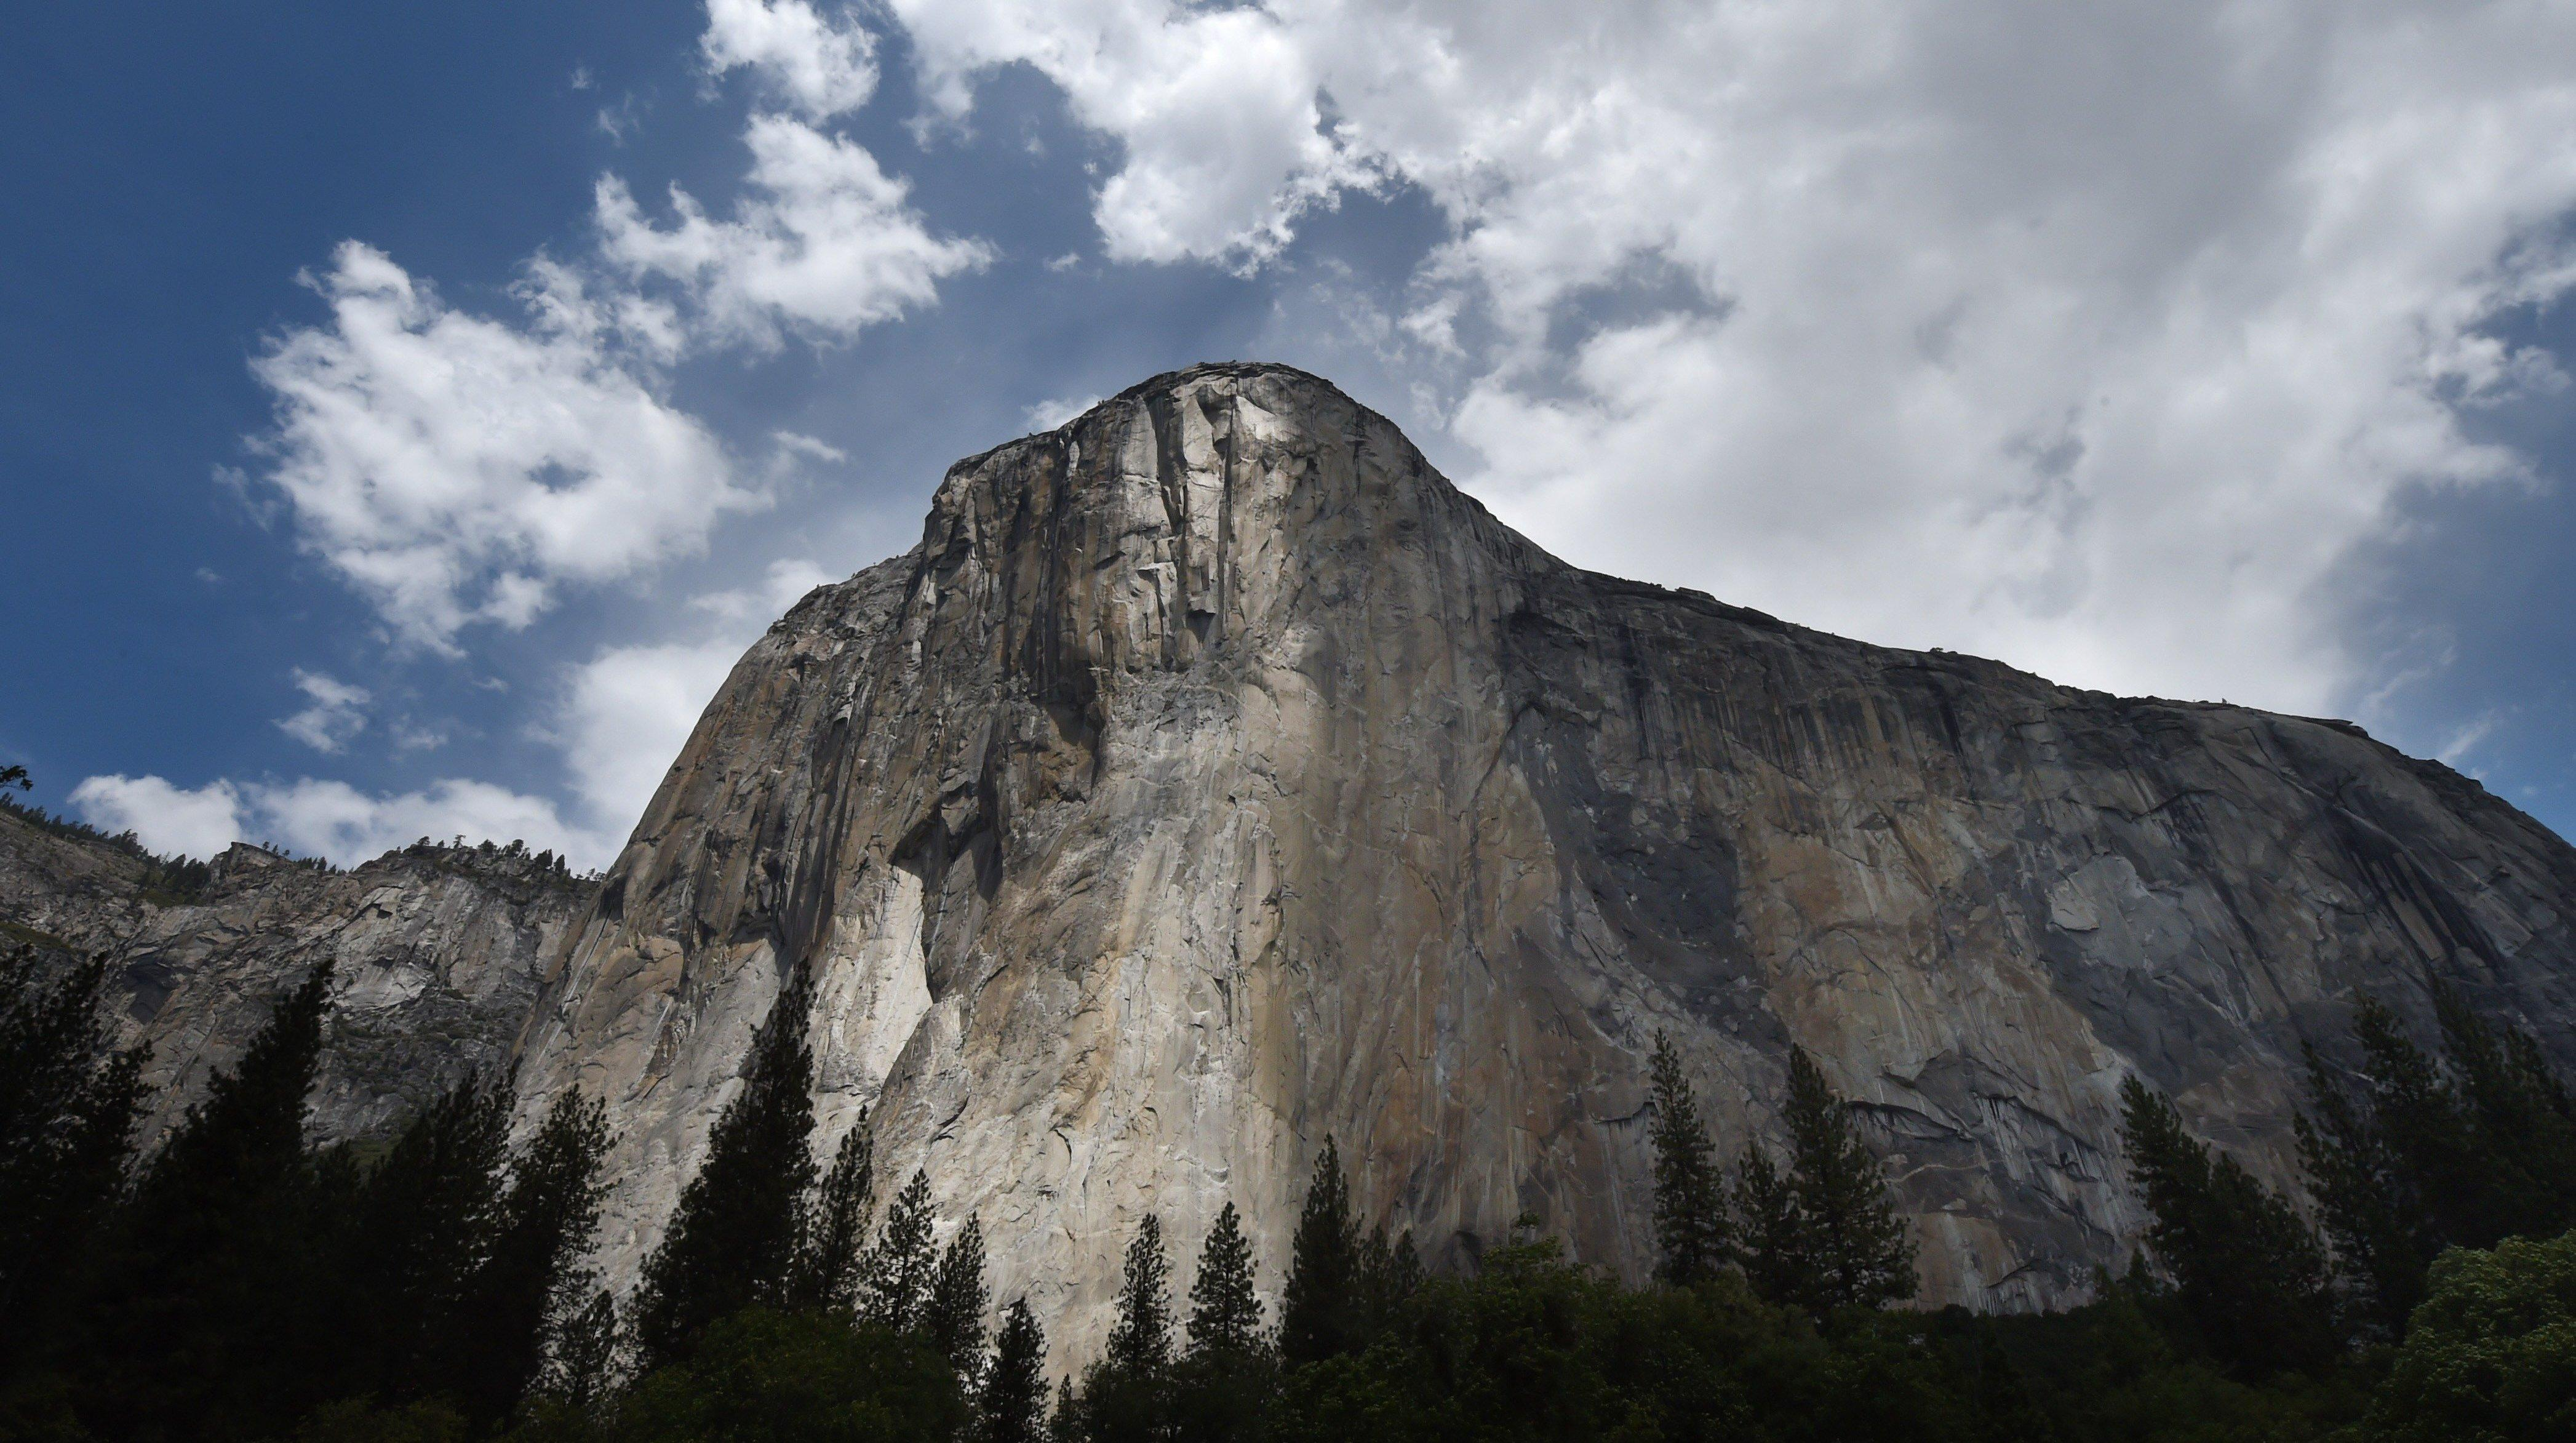 One Dead After Rockfall On Yosemite's Famed El Capitan